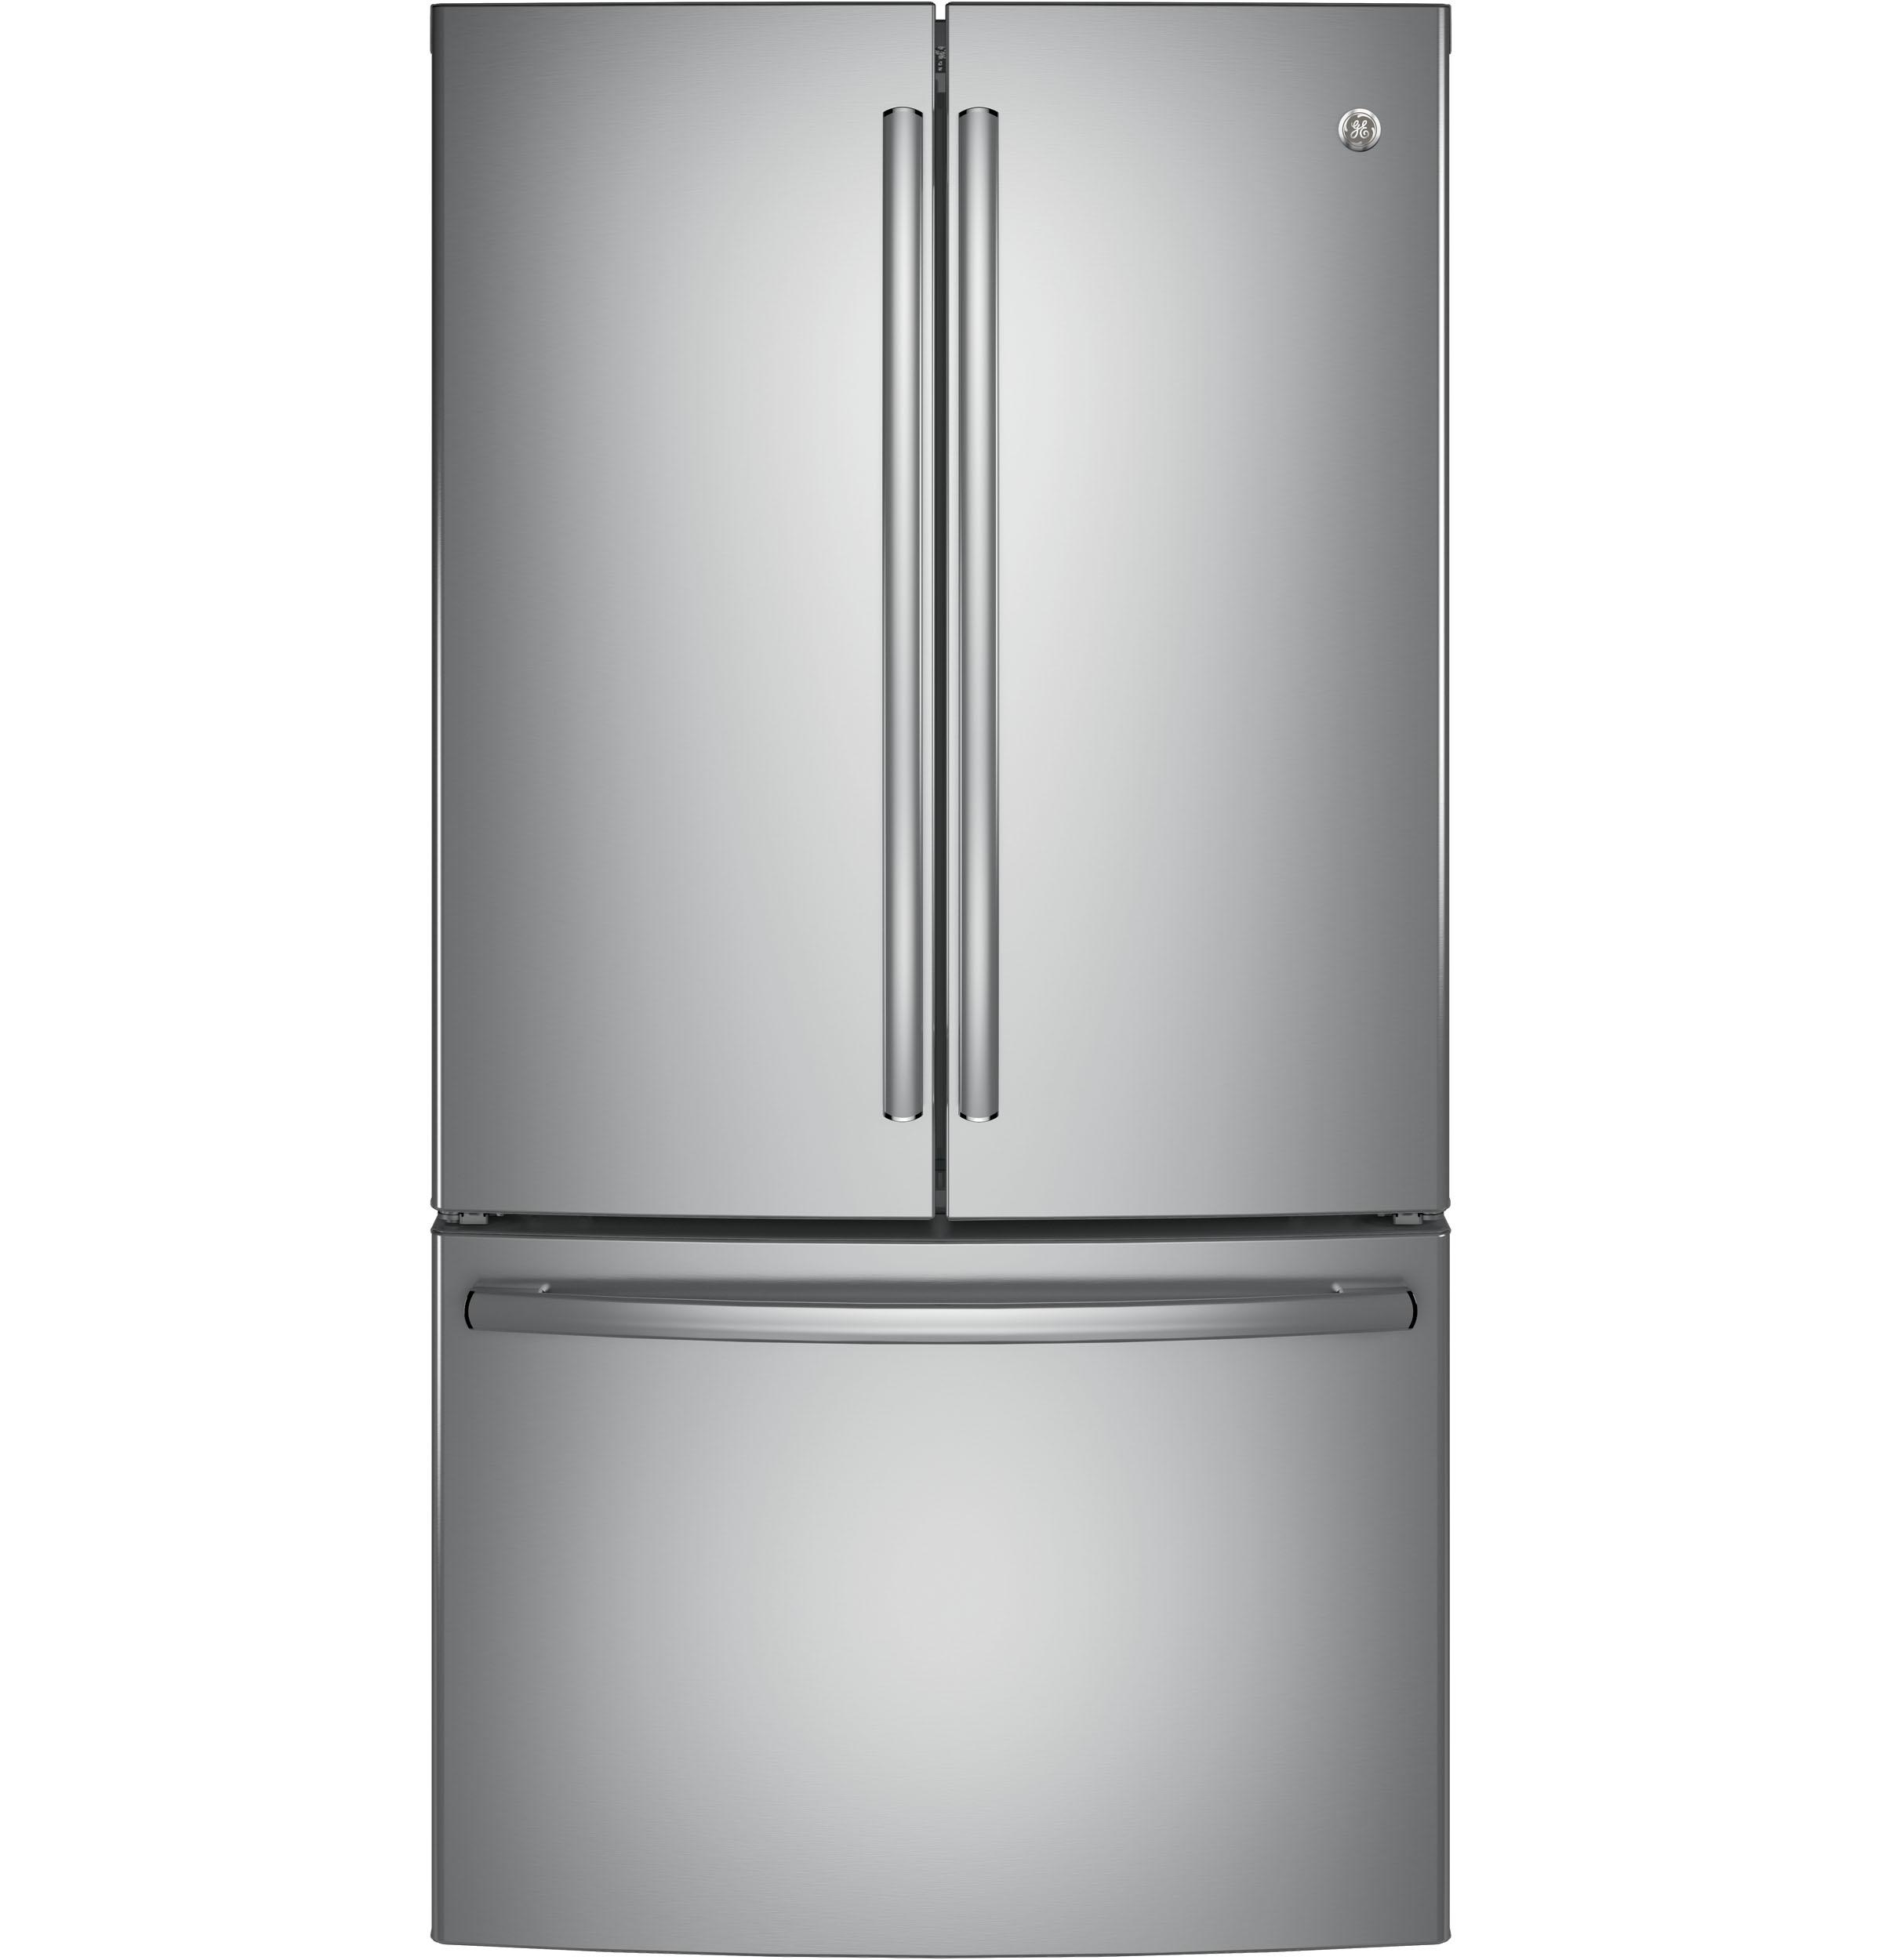 GE(R) ENERGY STAR(R) 28.5 Cu. Ft. French-Door Refrigerator Stainless Steel